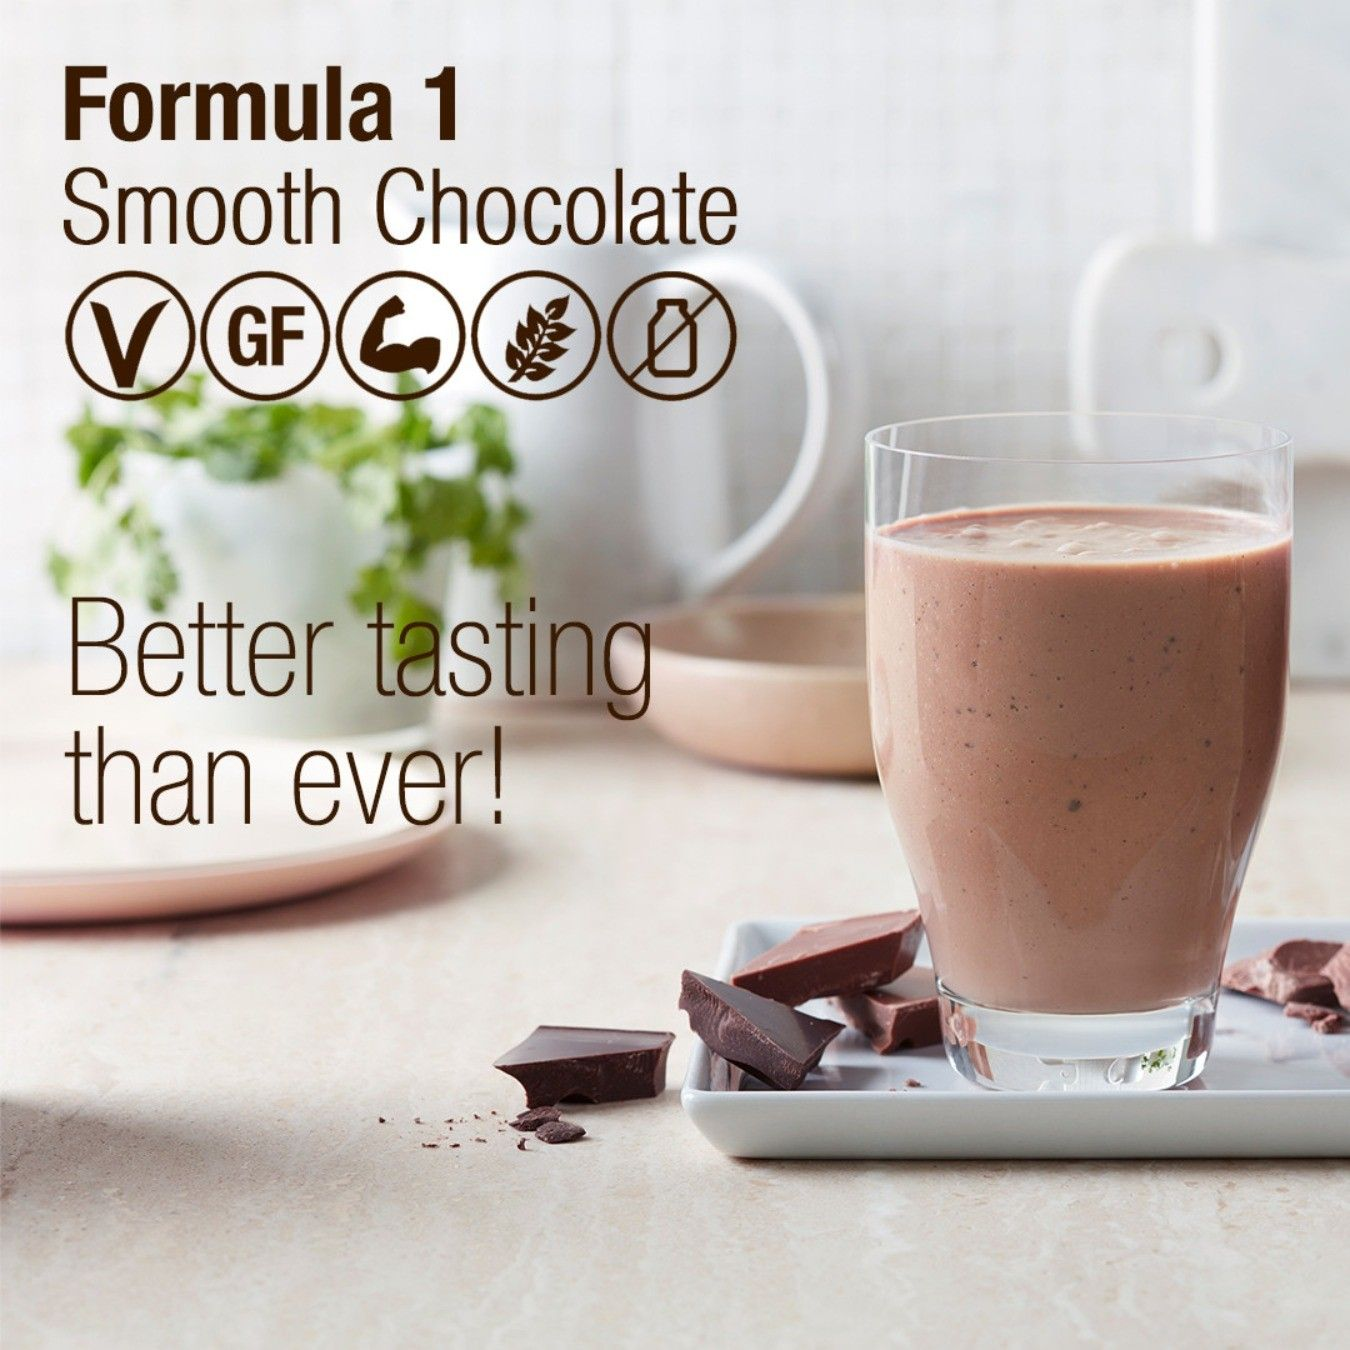 The Number 1 Meal Replacement Shake In The World Herbalife Formula 1 Shakes Have Helped People All Across The Globe R Herbalife Nutrition Herbalife Nutrition